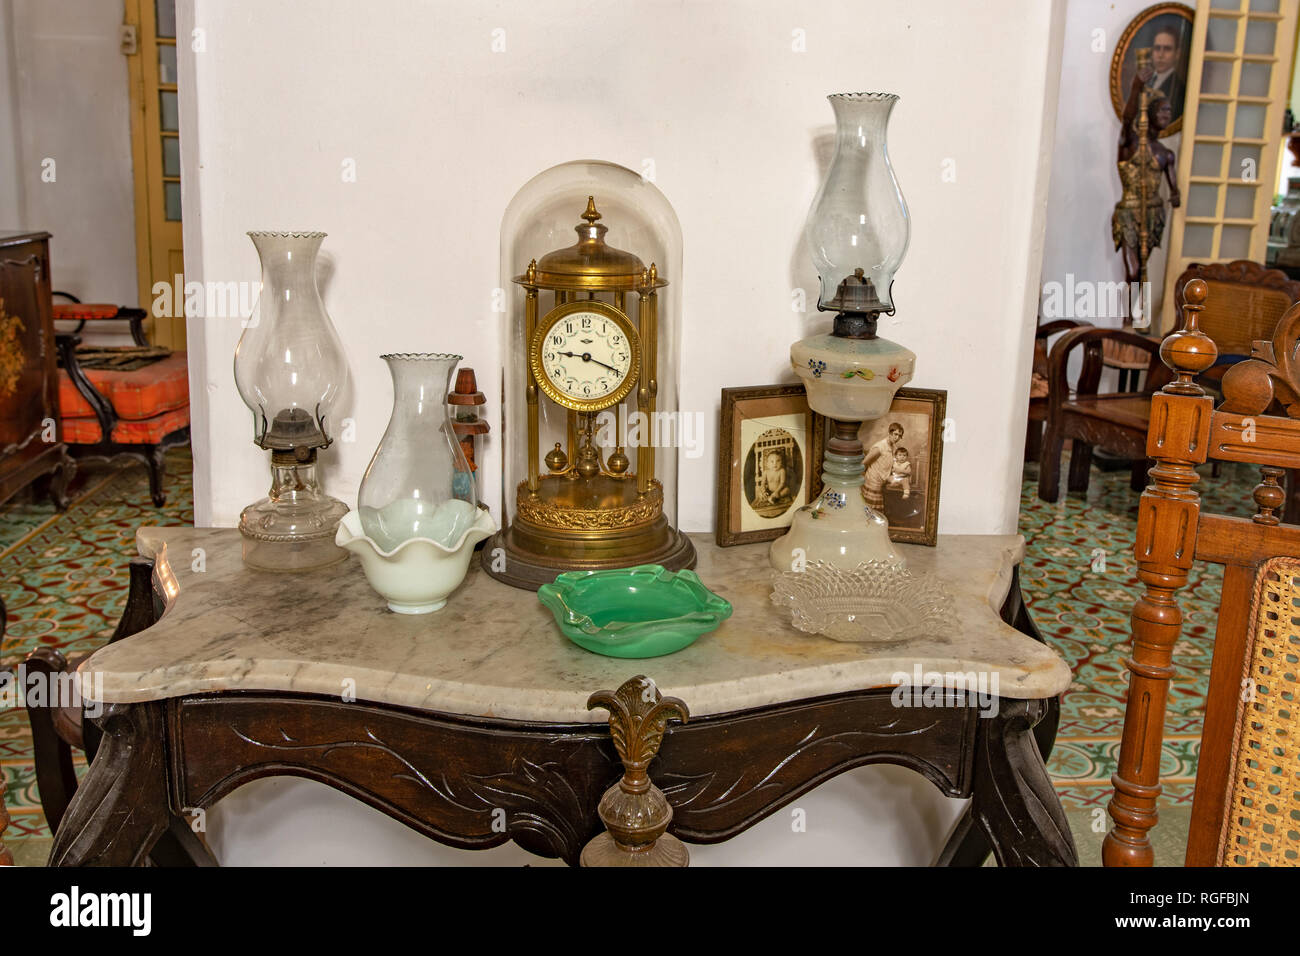 Antique clock on a small table in a colonial house - Stock Image